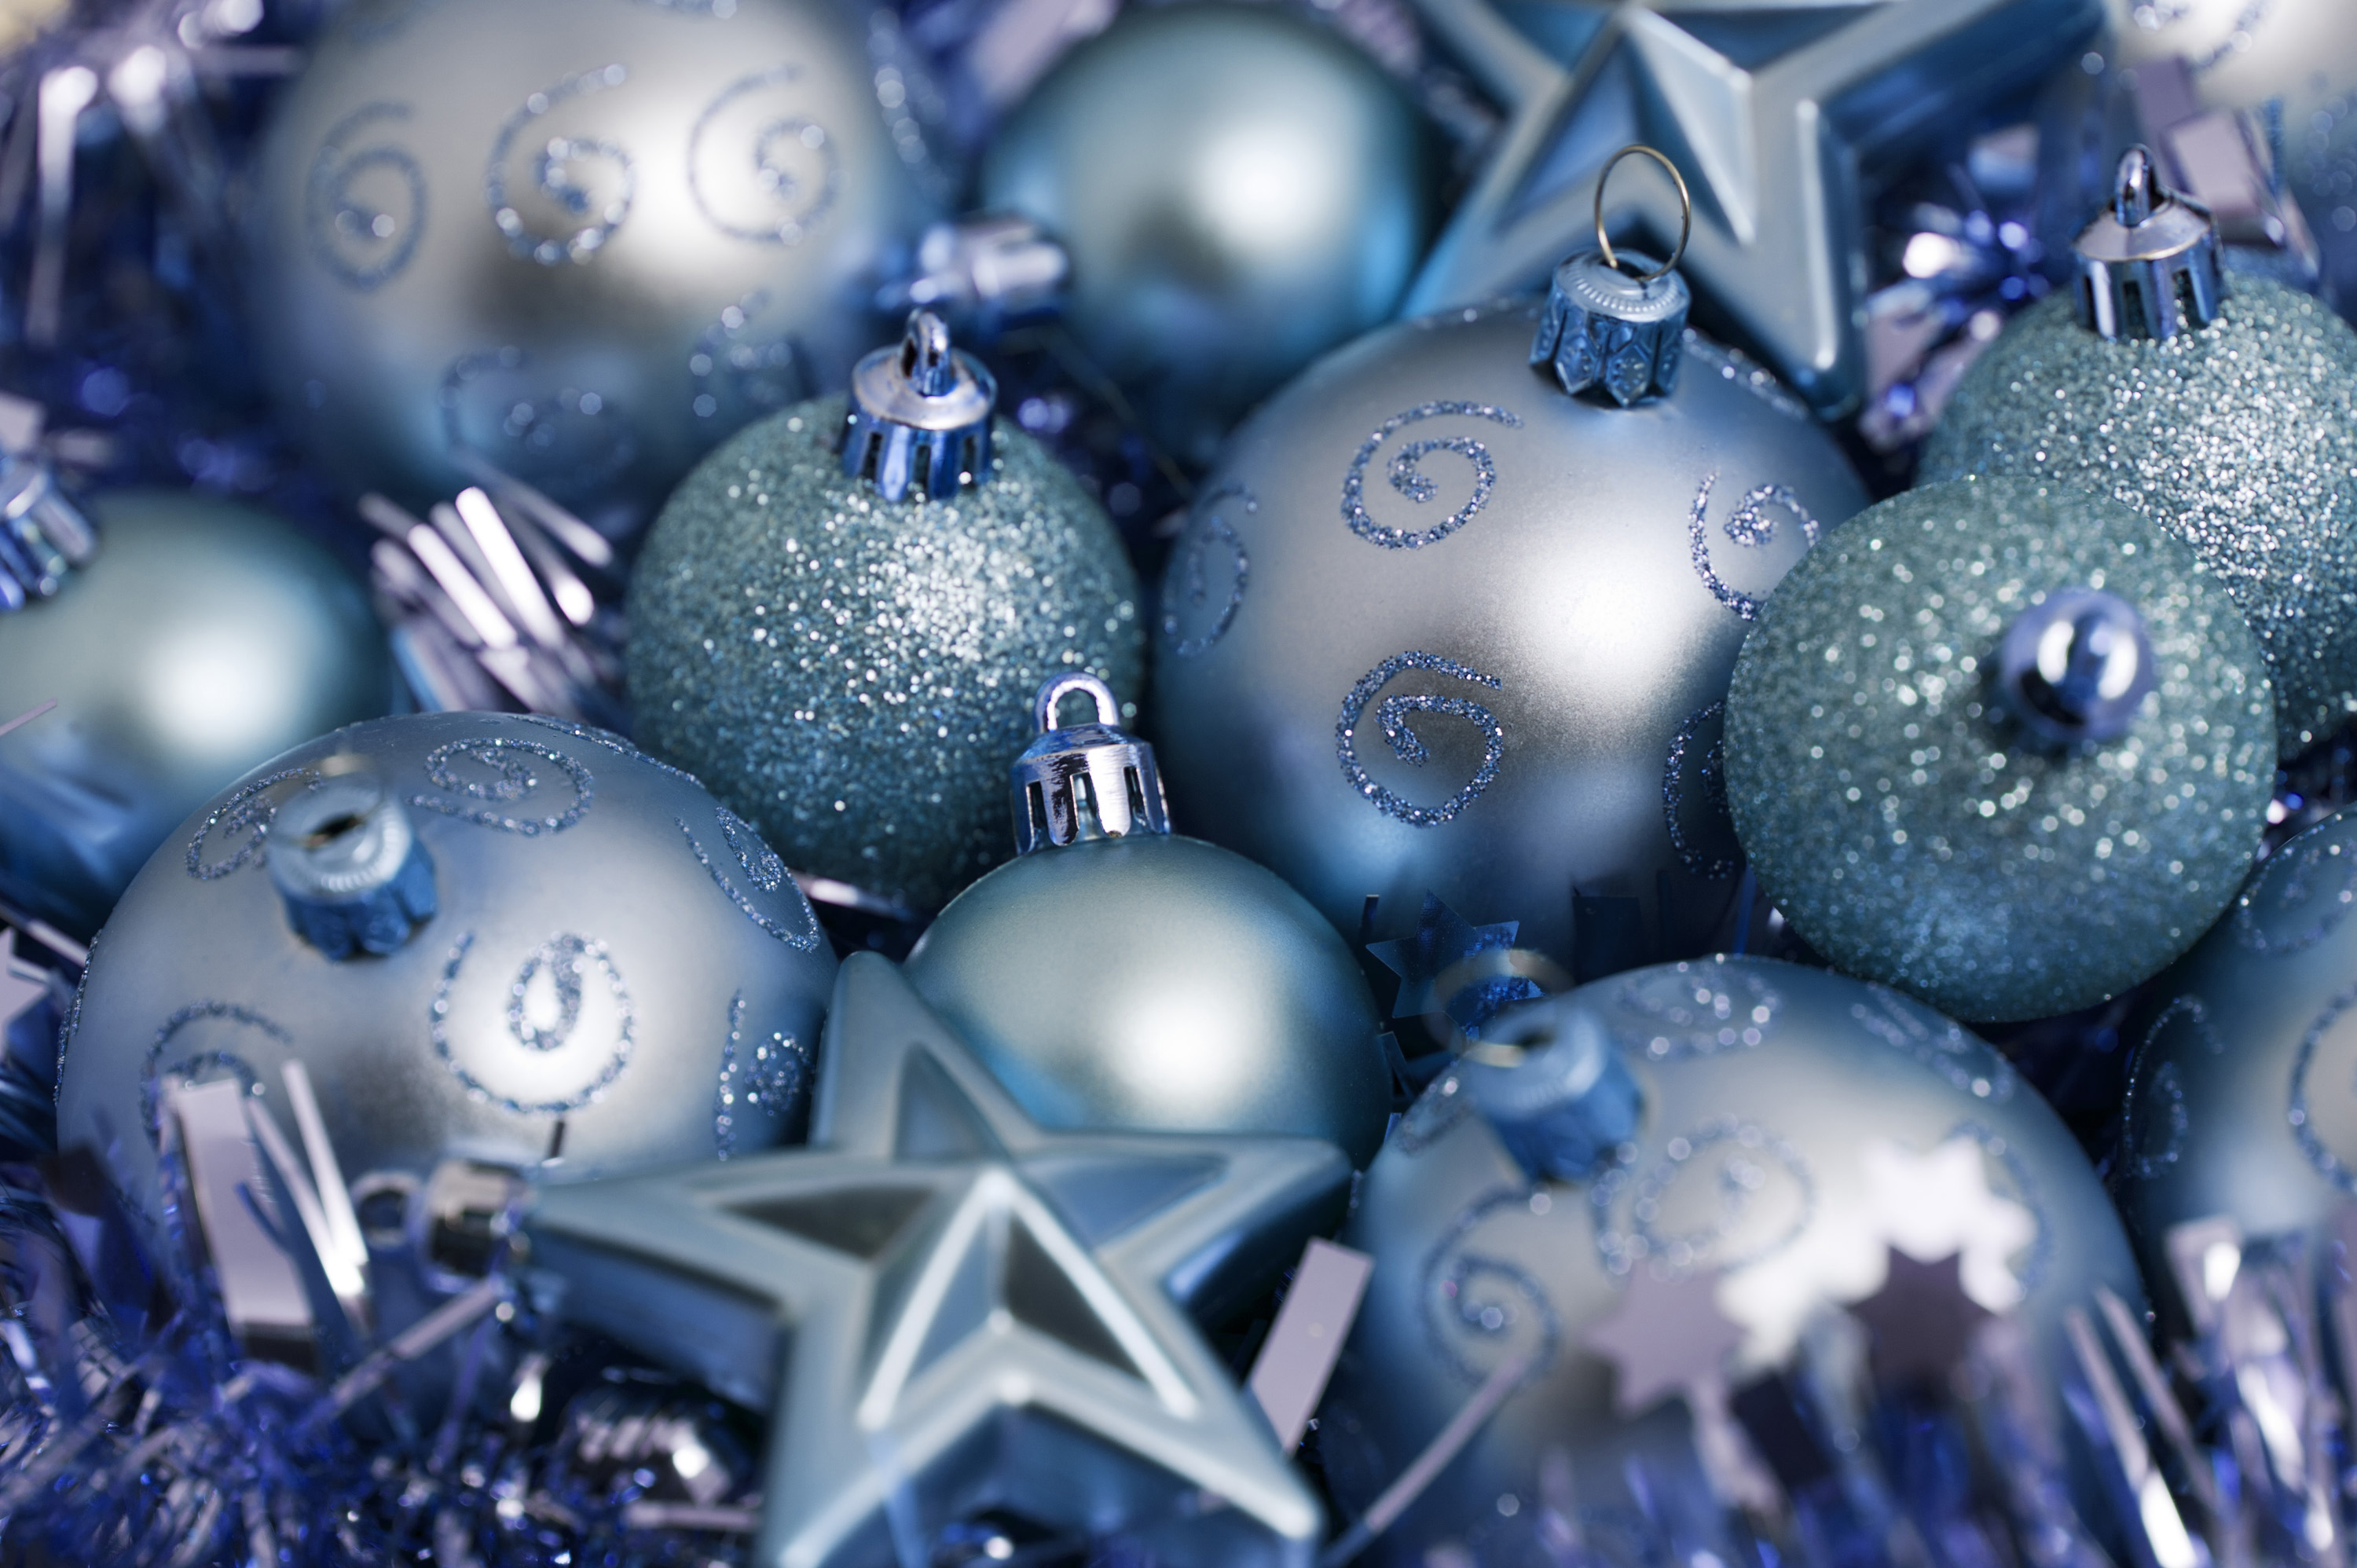 An assortment of decorative blue baubles and stars for a Christmas background or greeting